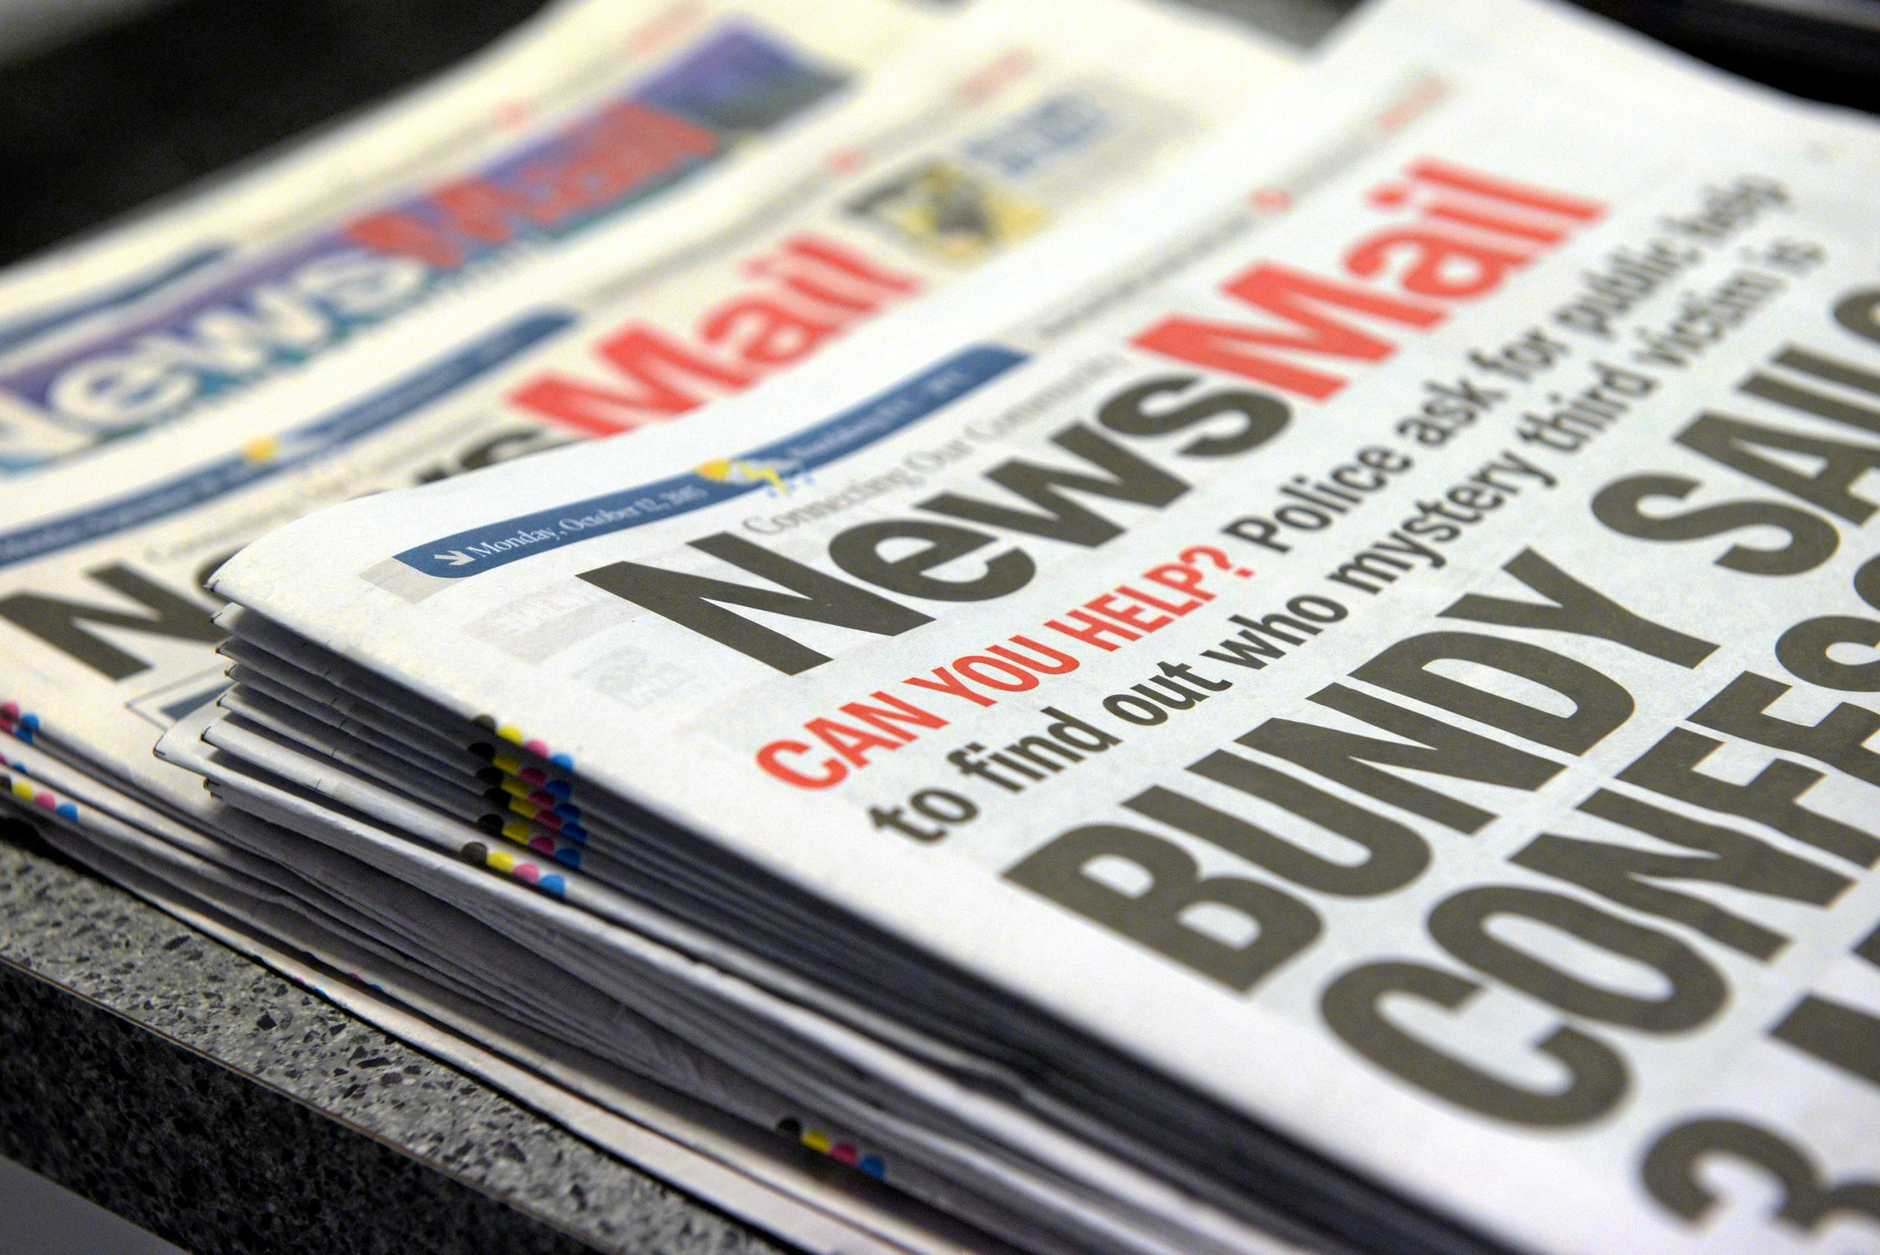 Our focus on quality in fast-changing media landscape | News